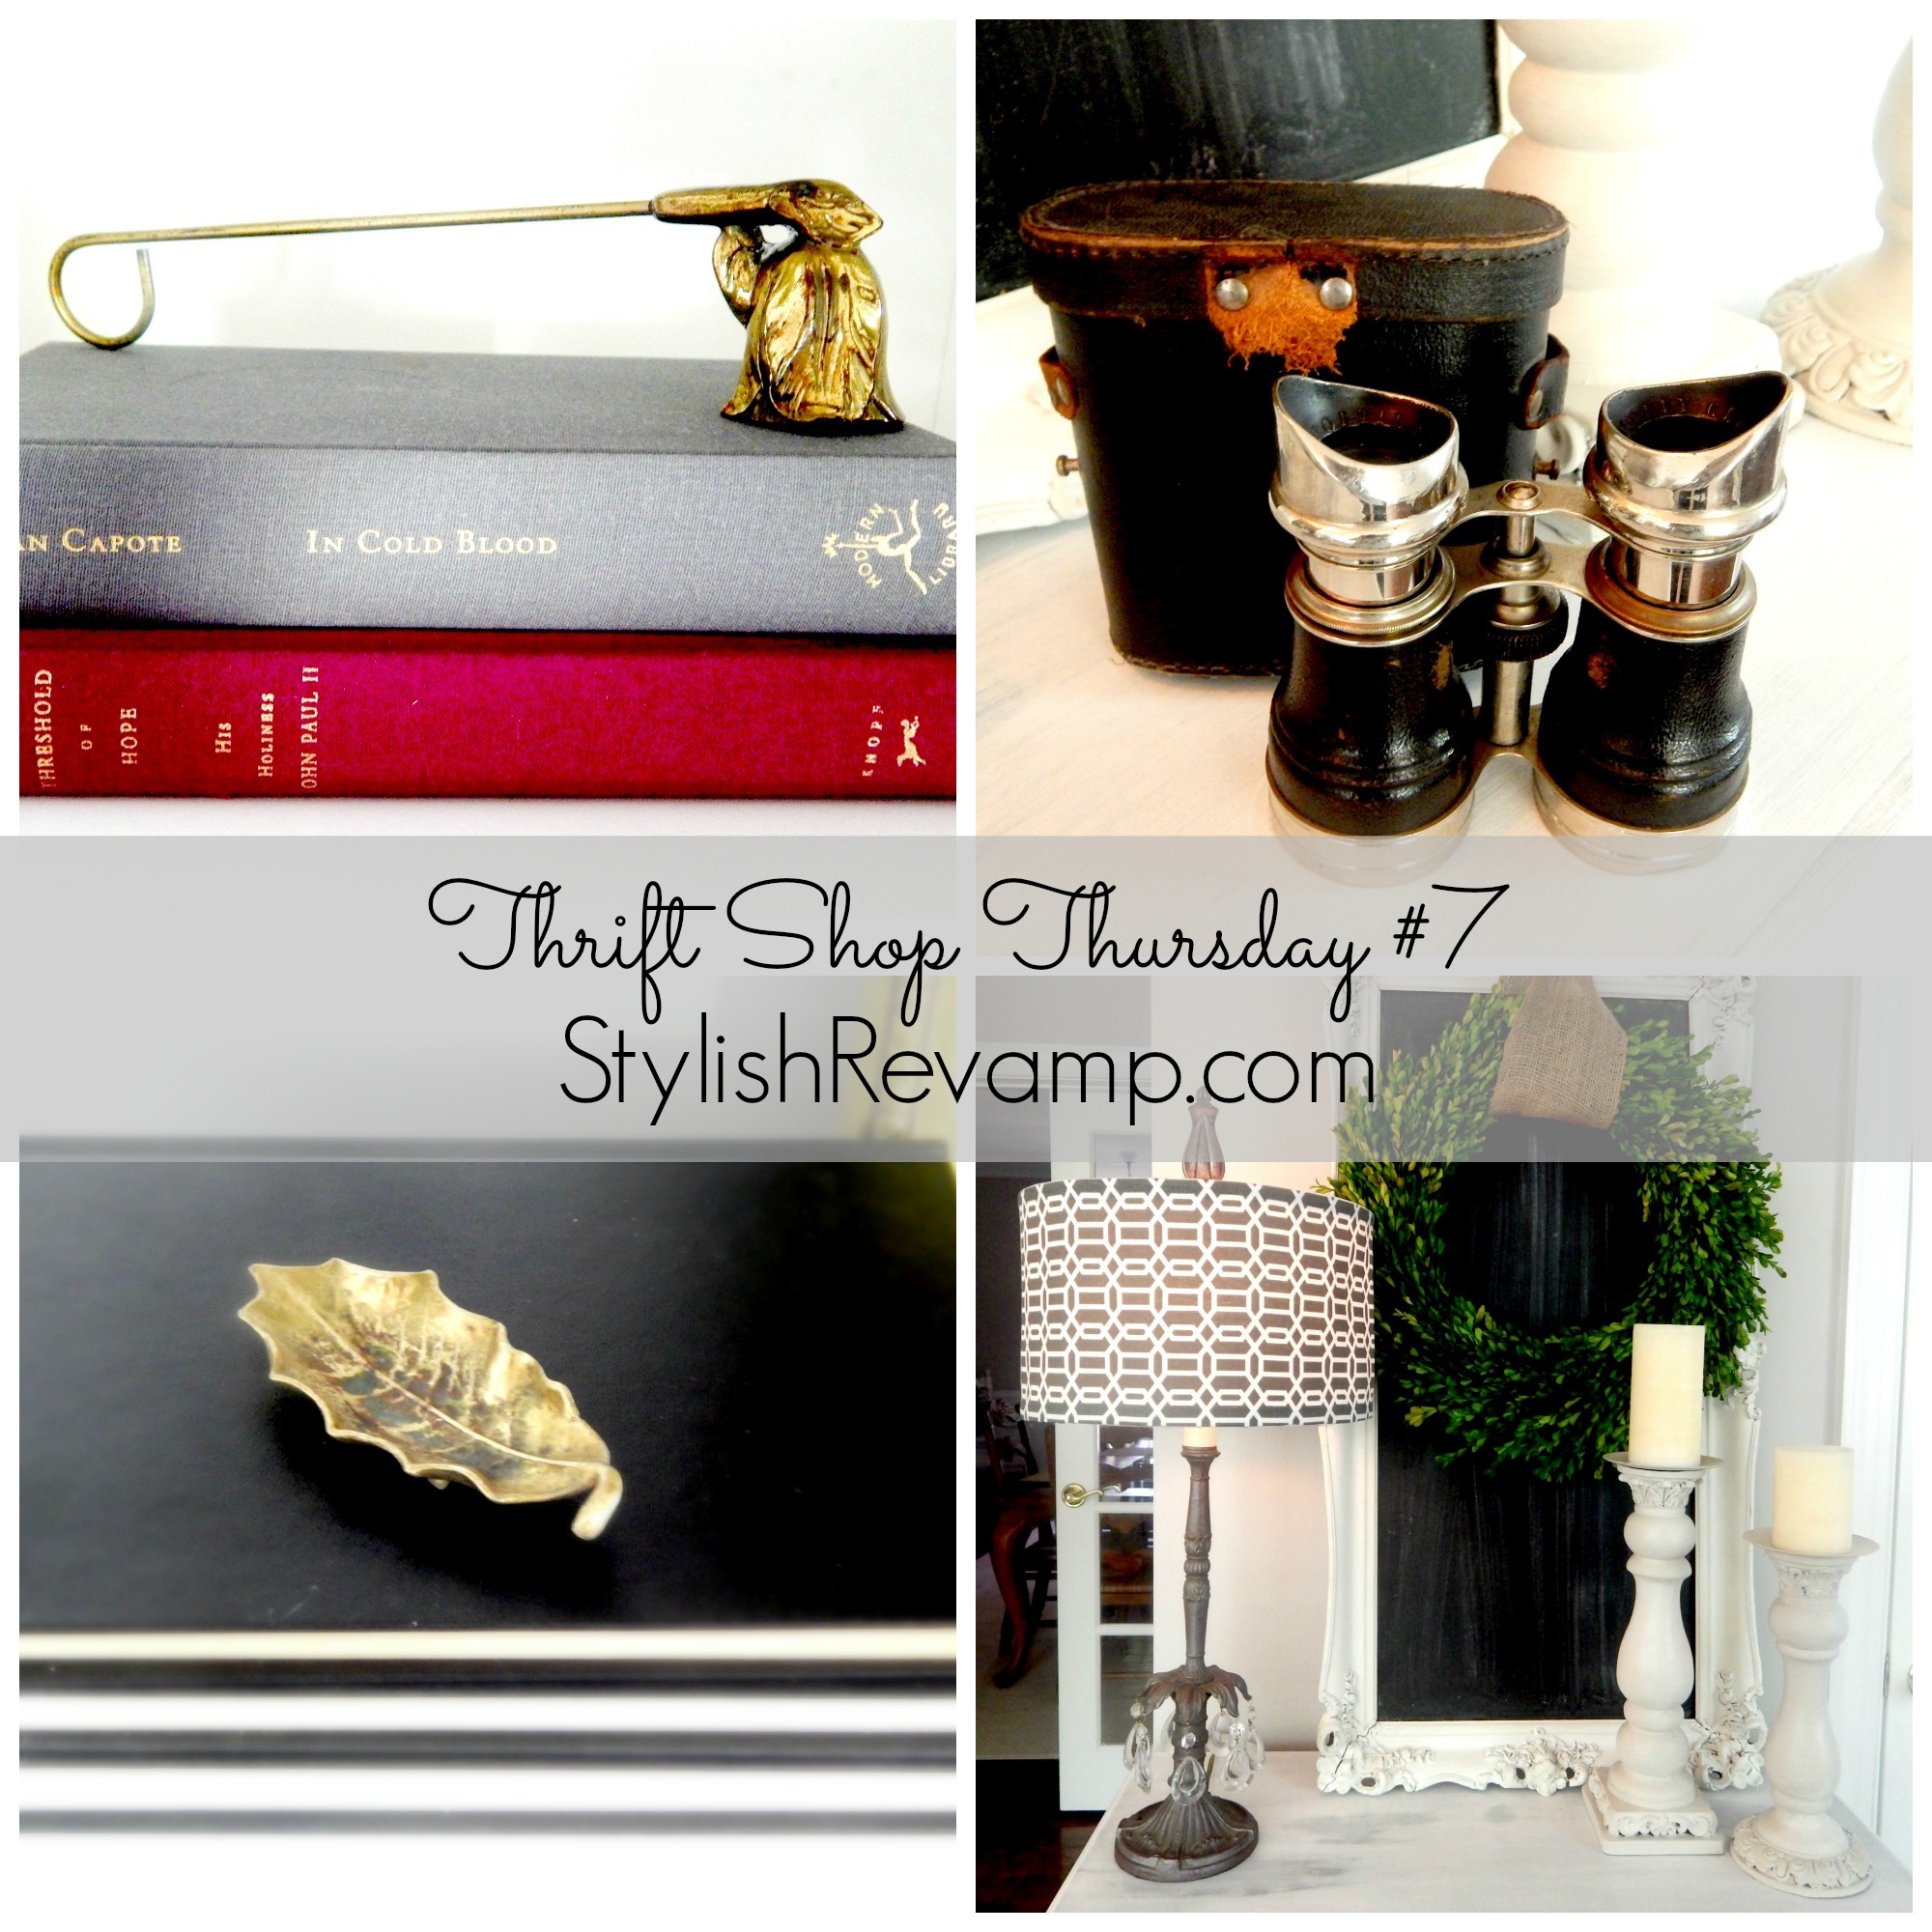 Thrift Shop Thursday #7